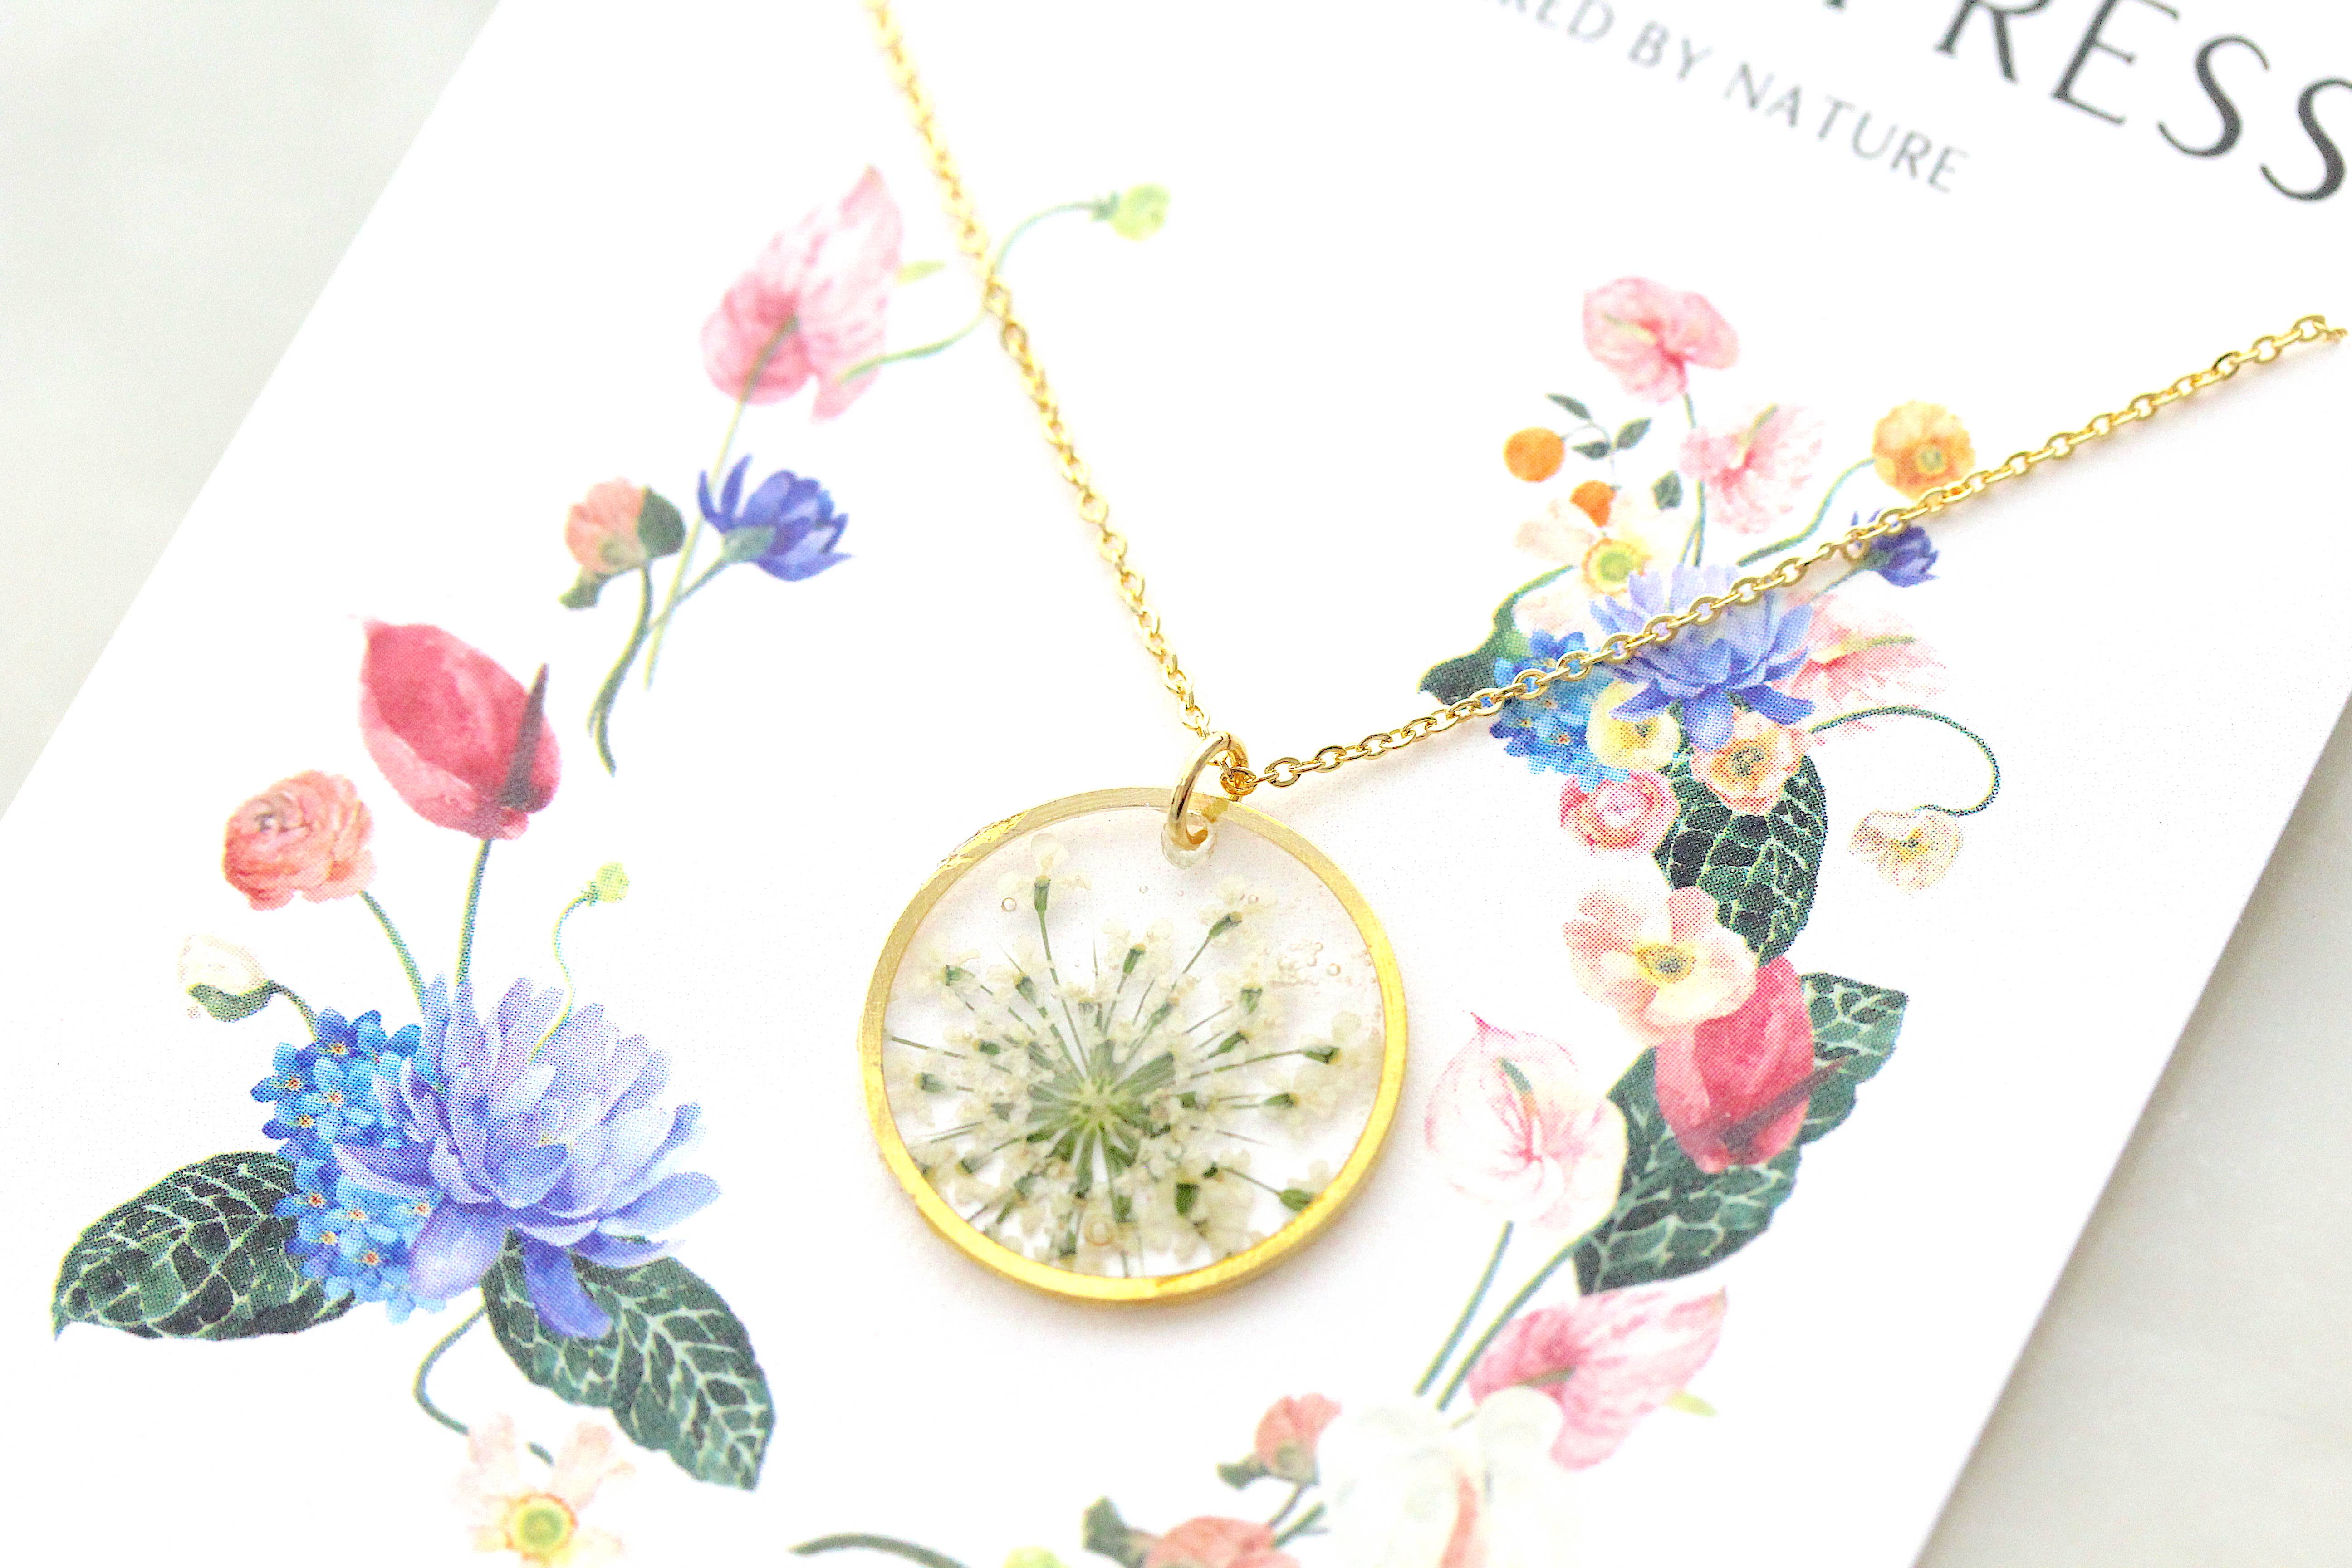 Gift Flower Necklace Necklace Clover Queen Anne/'s Lace Gold Plated Flower Jewelry Pendant Forget Me Not Baby/'s Breath